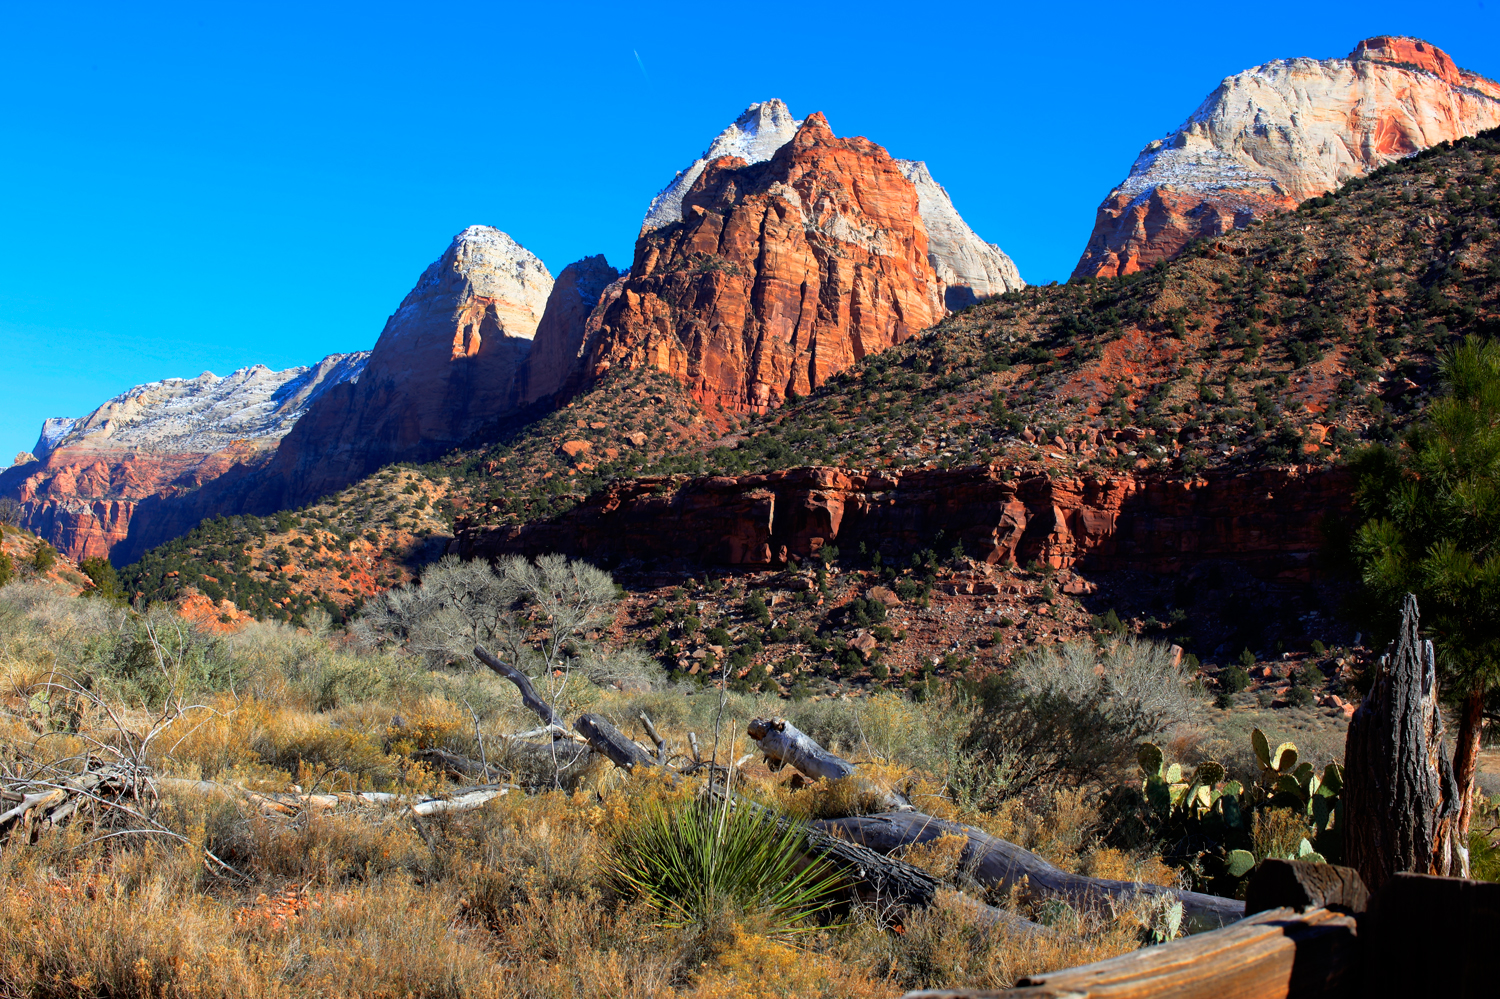 This image was taken at the beginning of Zion's National Park. The park is a wonder to see.